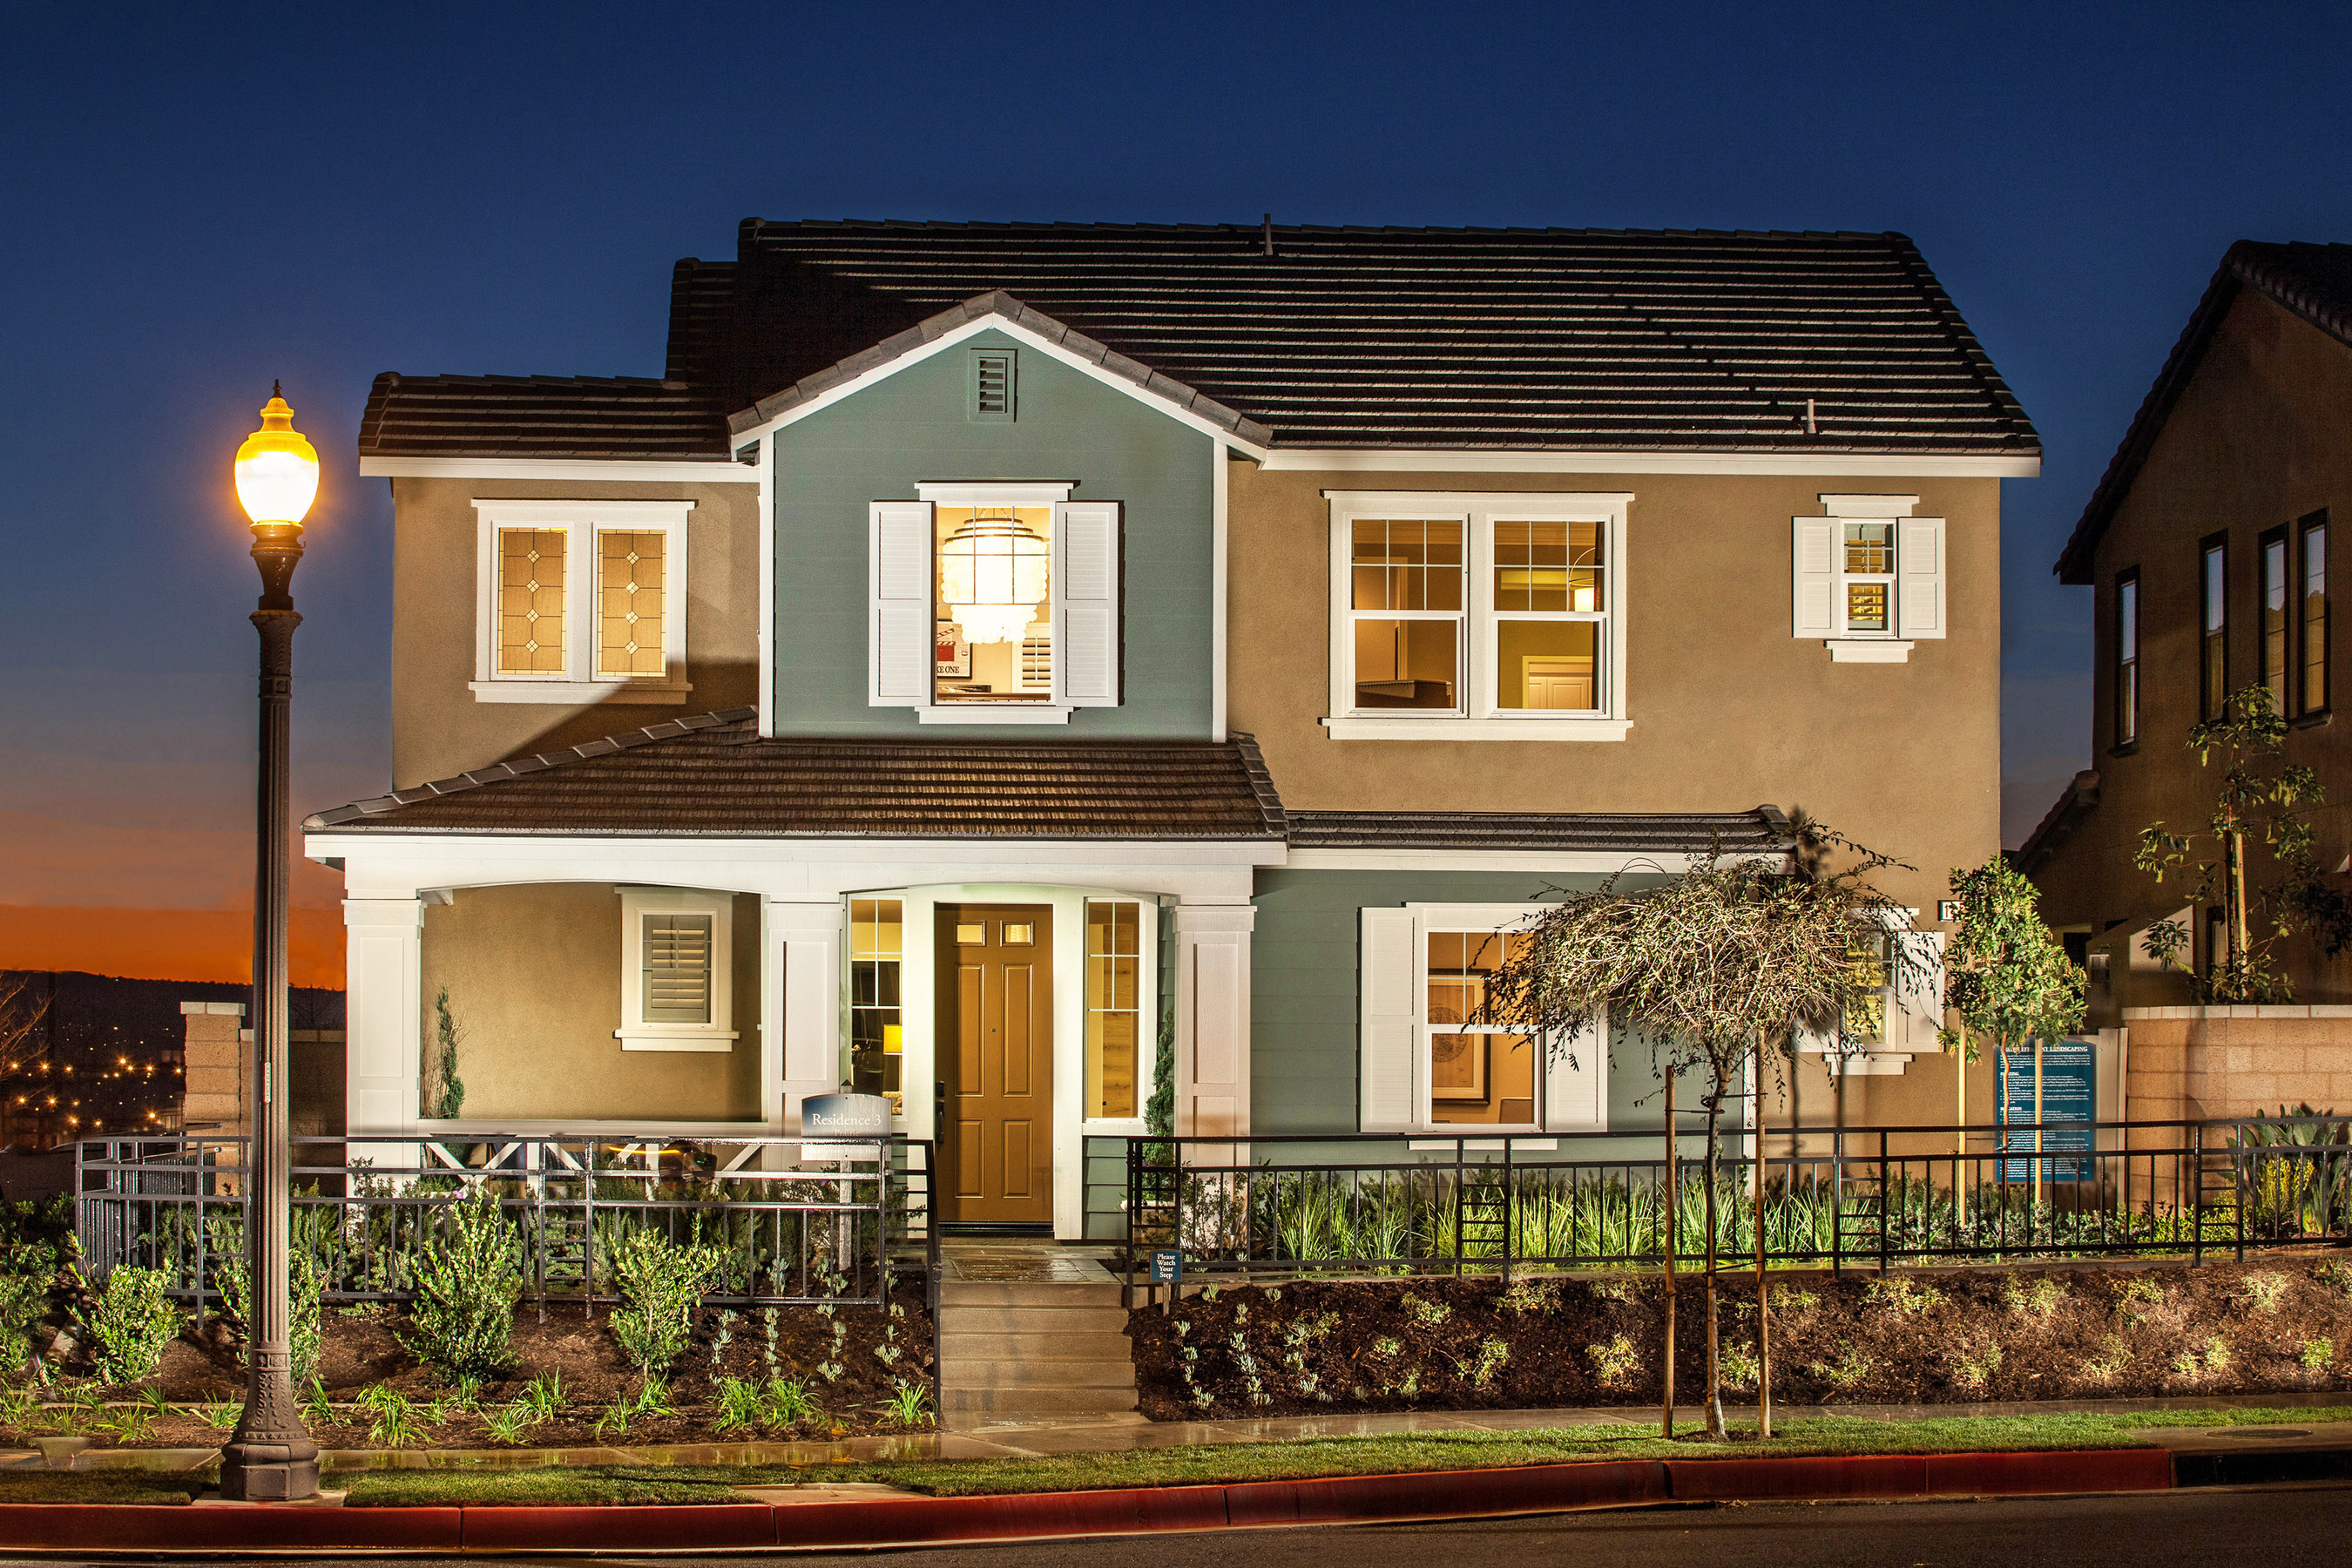 Hampshire At College Park Brings Standard Pacific Homes' Newest Architectural Designs To Chino Home Shoppers